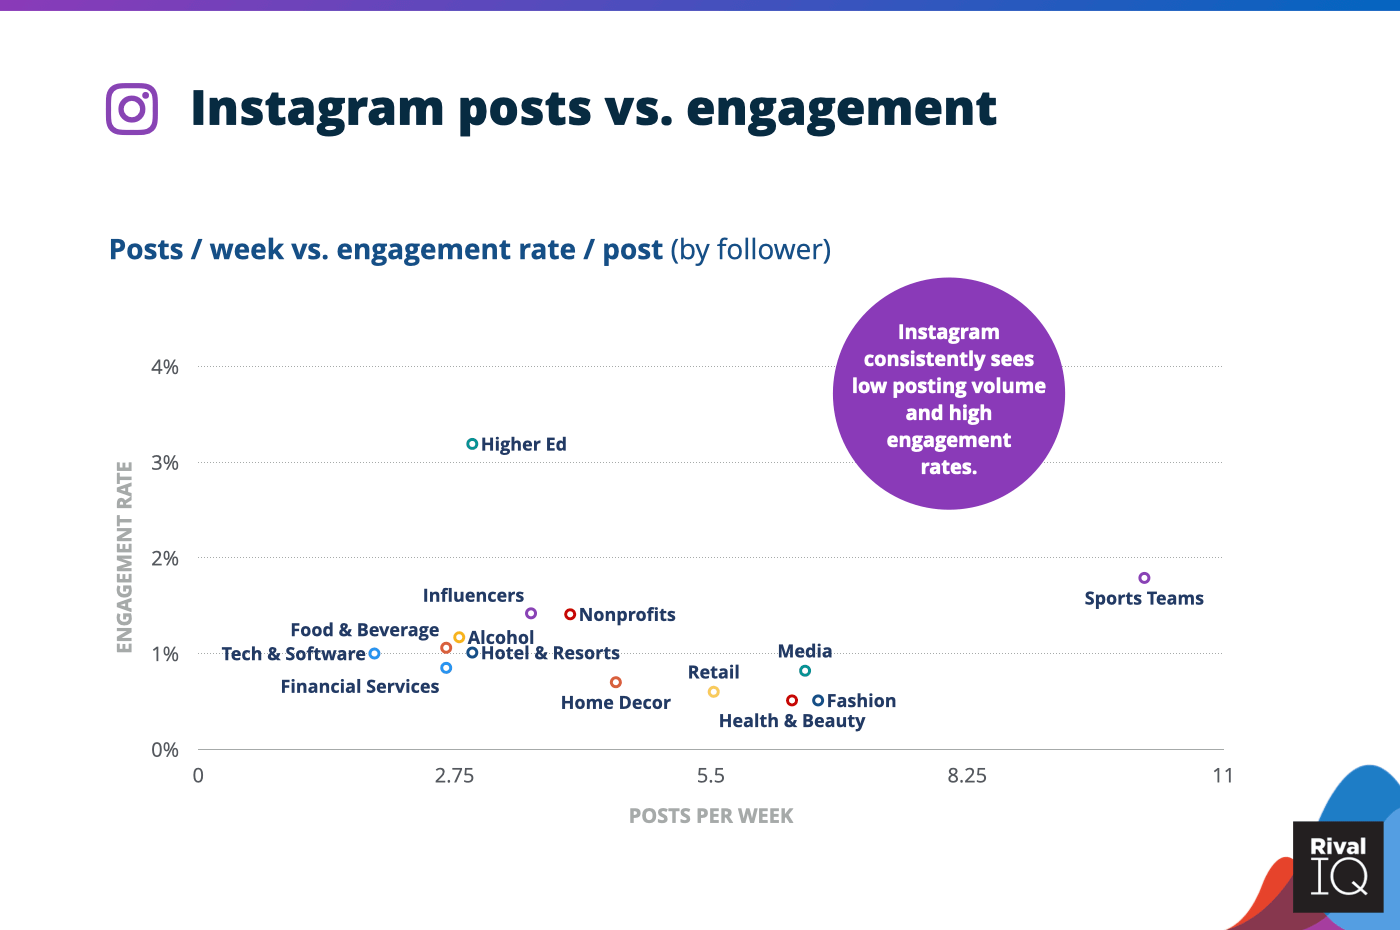 Chart of Instagram posts per week vs. engagement rate, all industries